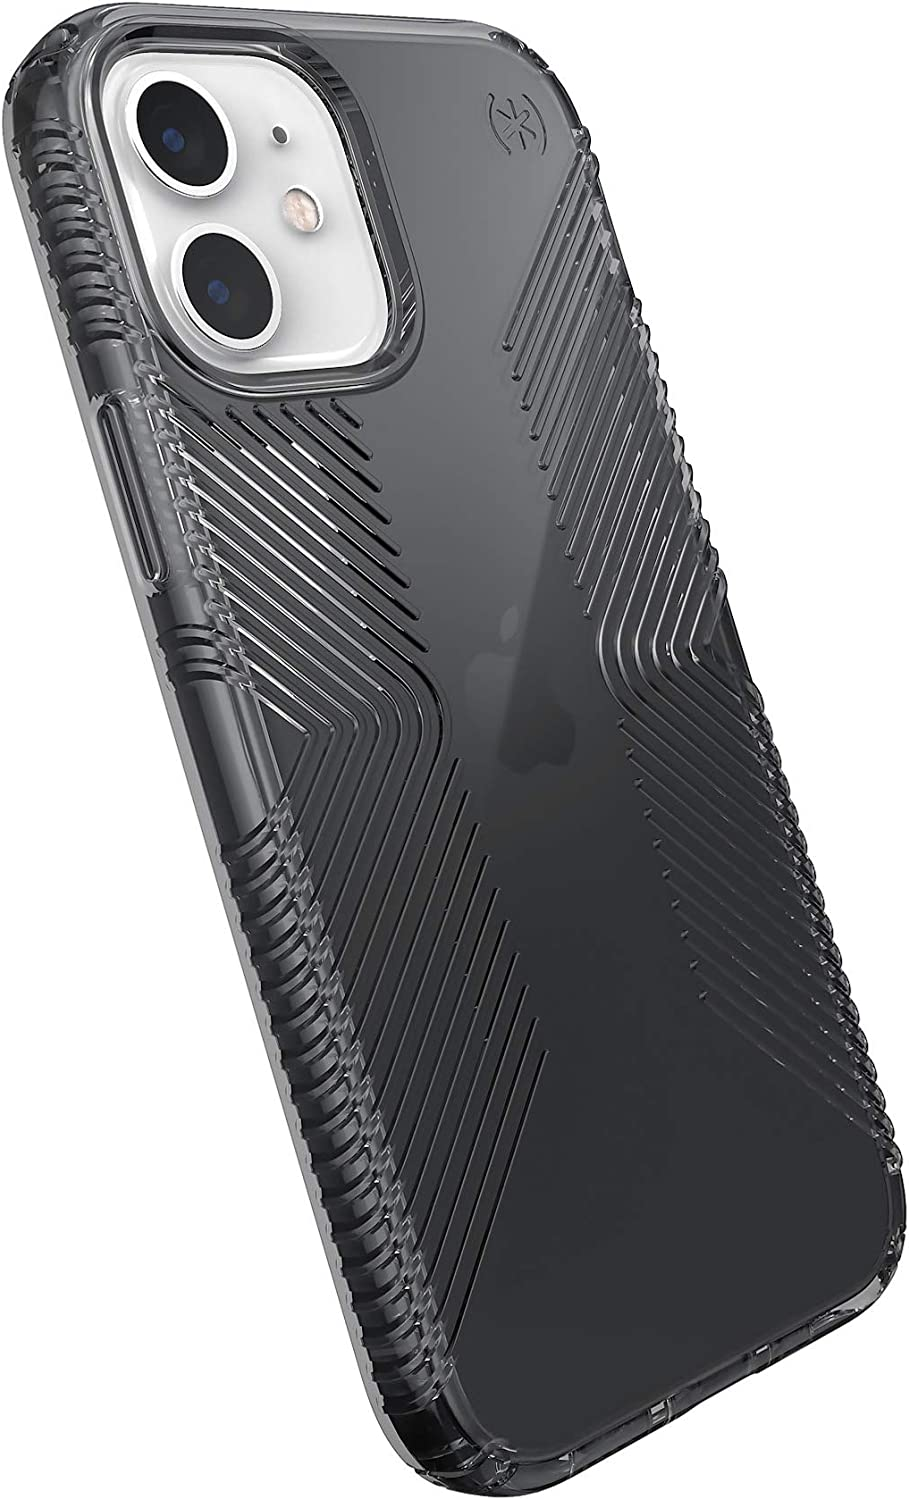 Speck Products Presidio Perfect-Clear Grip iPhone 12, iPhone 12 Pro Case, Obsidian/Obsidian